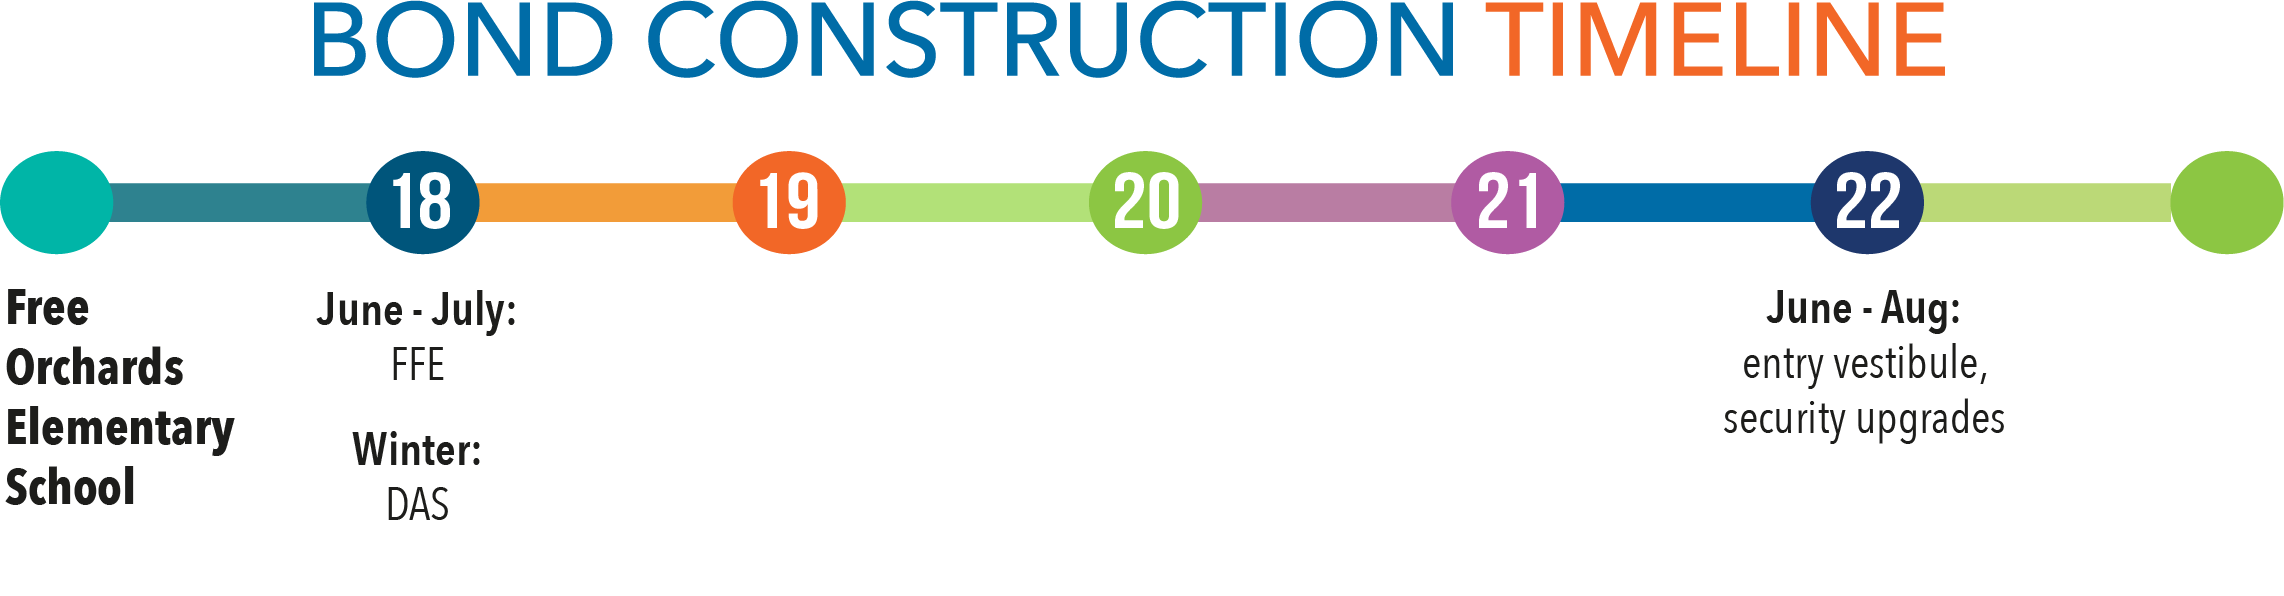 Bond construction timeline - Free Orchards